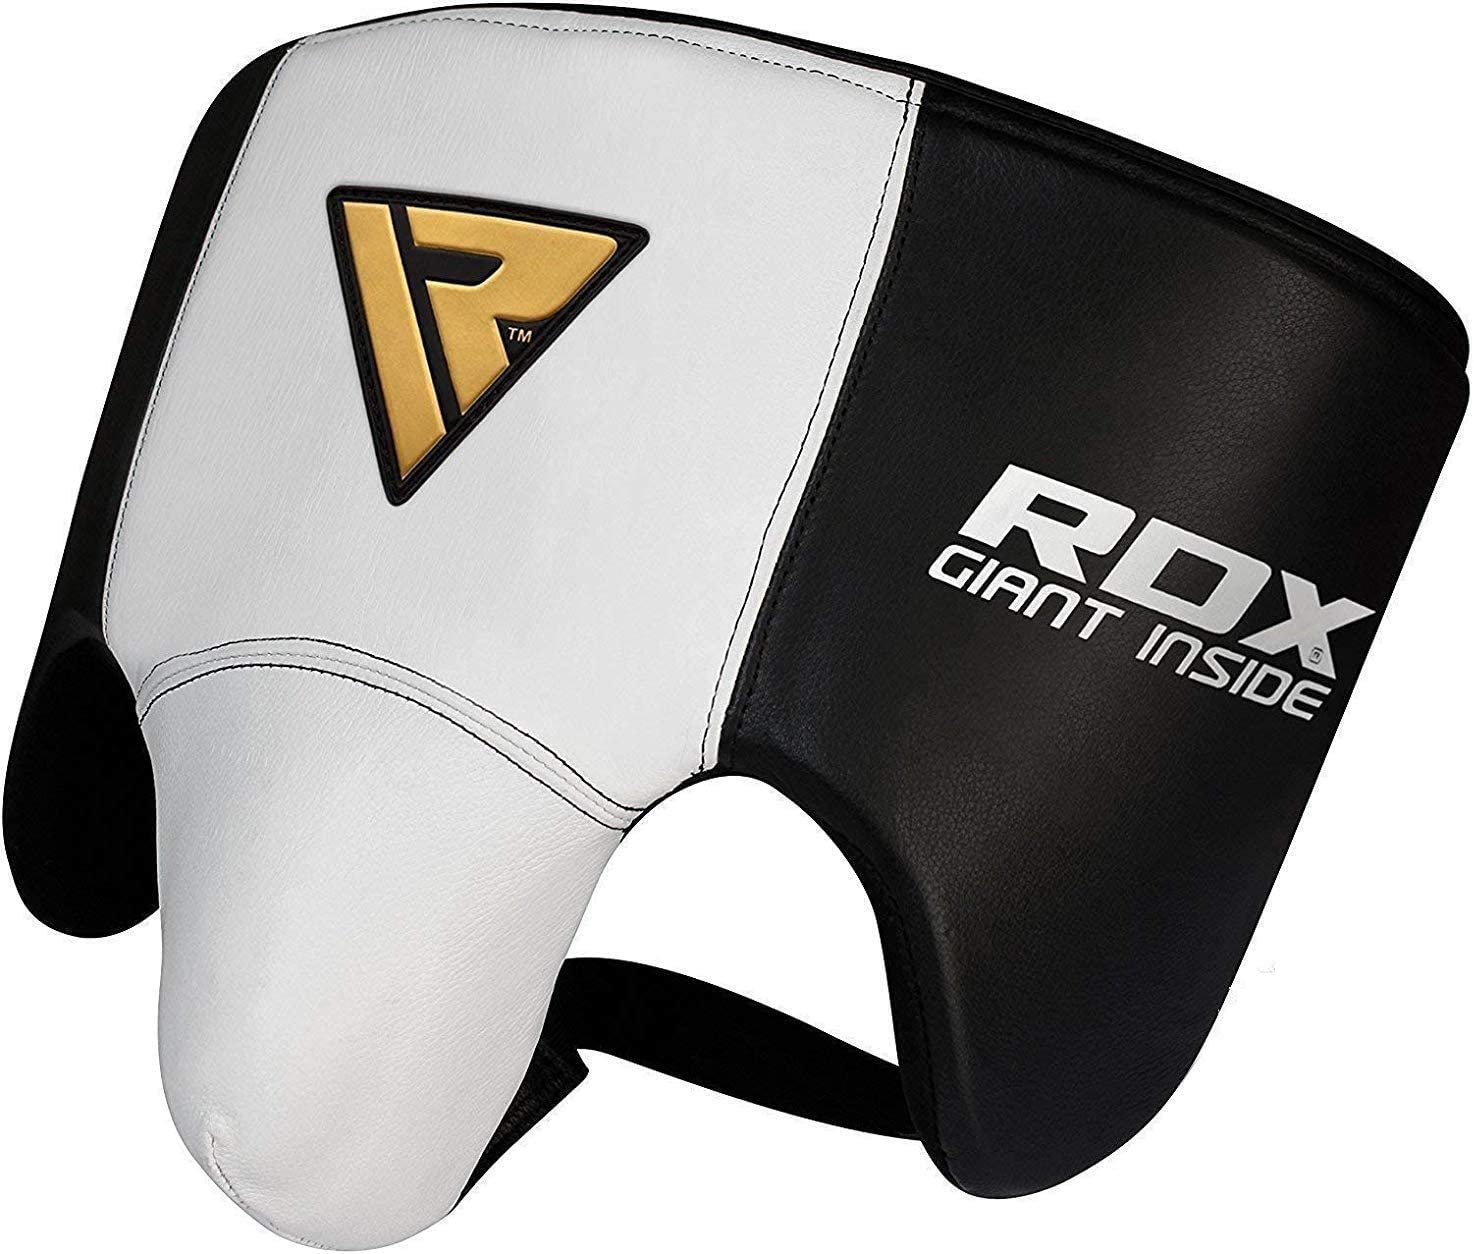 RDX Groin Protector for Boxing, Muay Thai, MMA Fighting and Kickboxing, Cowhide Leather Abdo Gear for Martial Arts Training, SATRA Approved Jockstrap Abdominal Guard for Sparring and Taekwondo : Sports & Outdoors